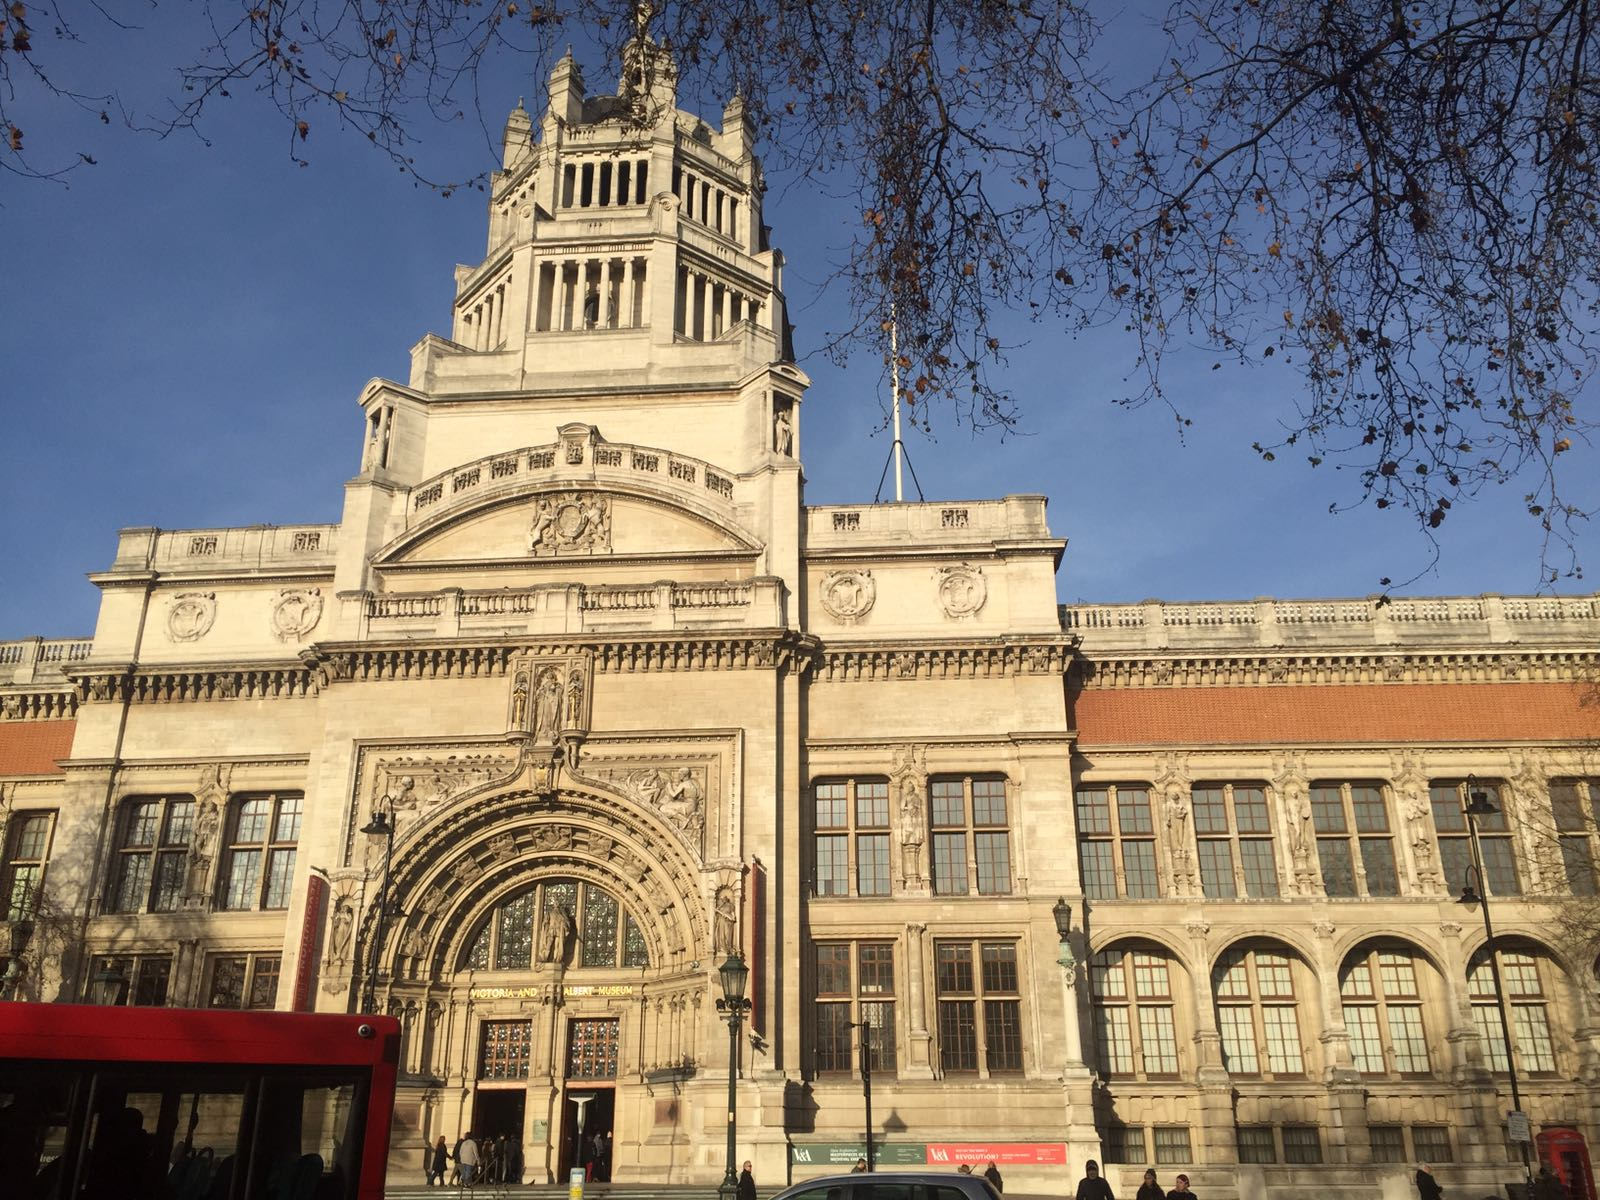 V&A Musuem - There Is Always More To Say